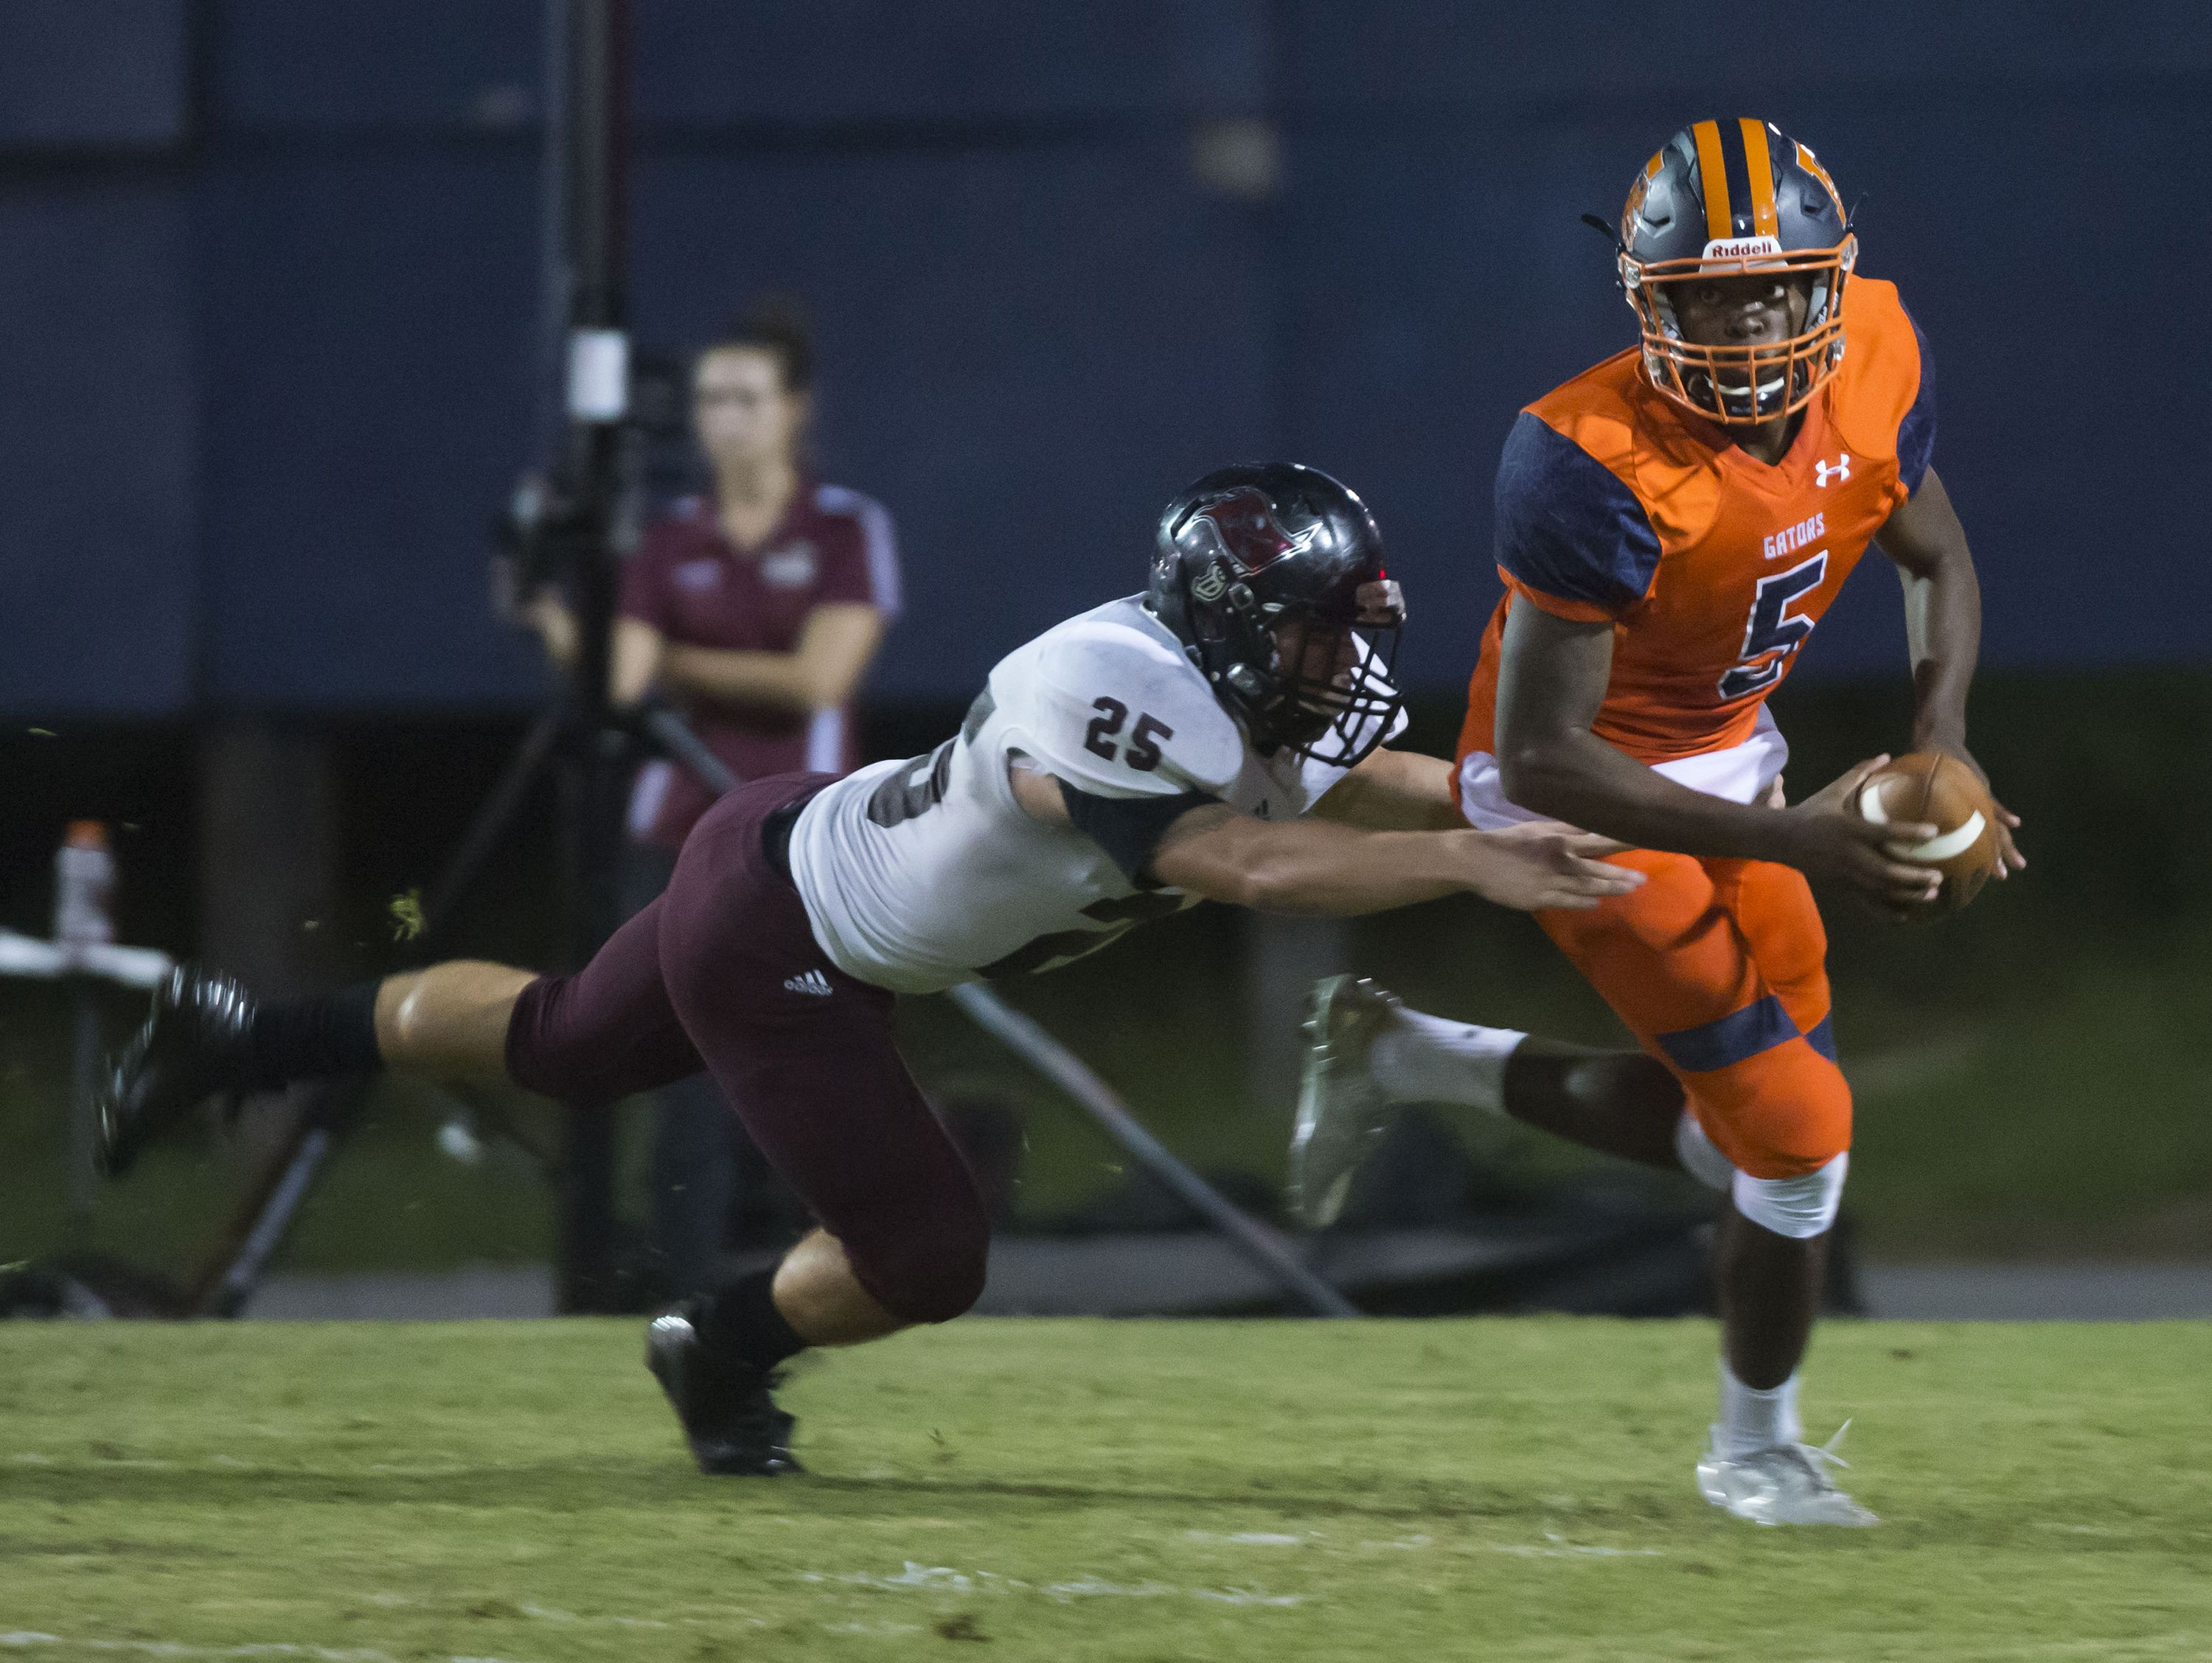 Navarre High School linebacker, Xavier Fernandez, (No. 25) wraps up Escambia High School quarterback, Av Smith, (No. 5) behind the line of scrimmage up by during Friday night's game.